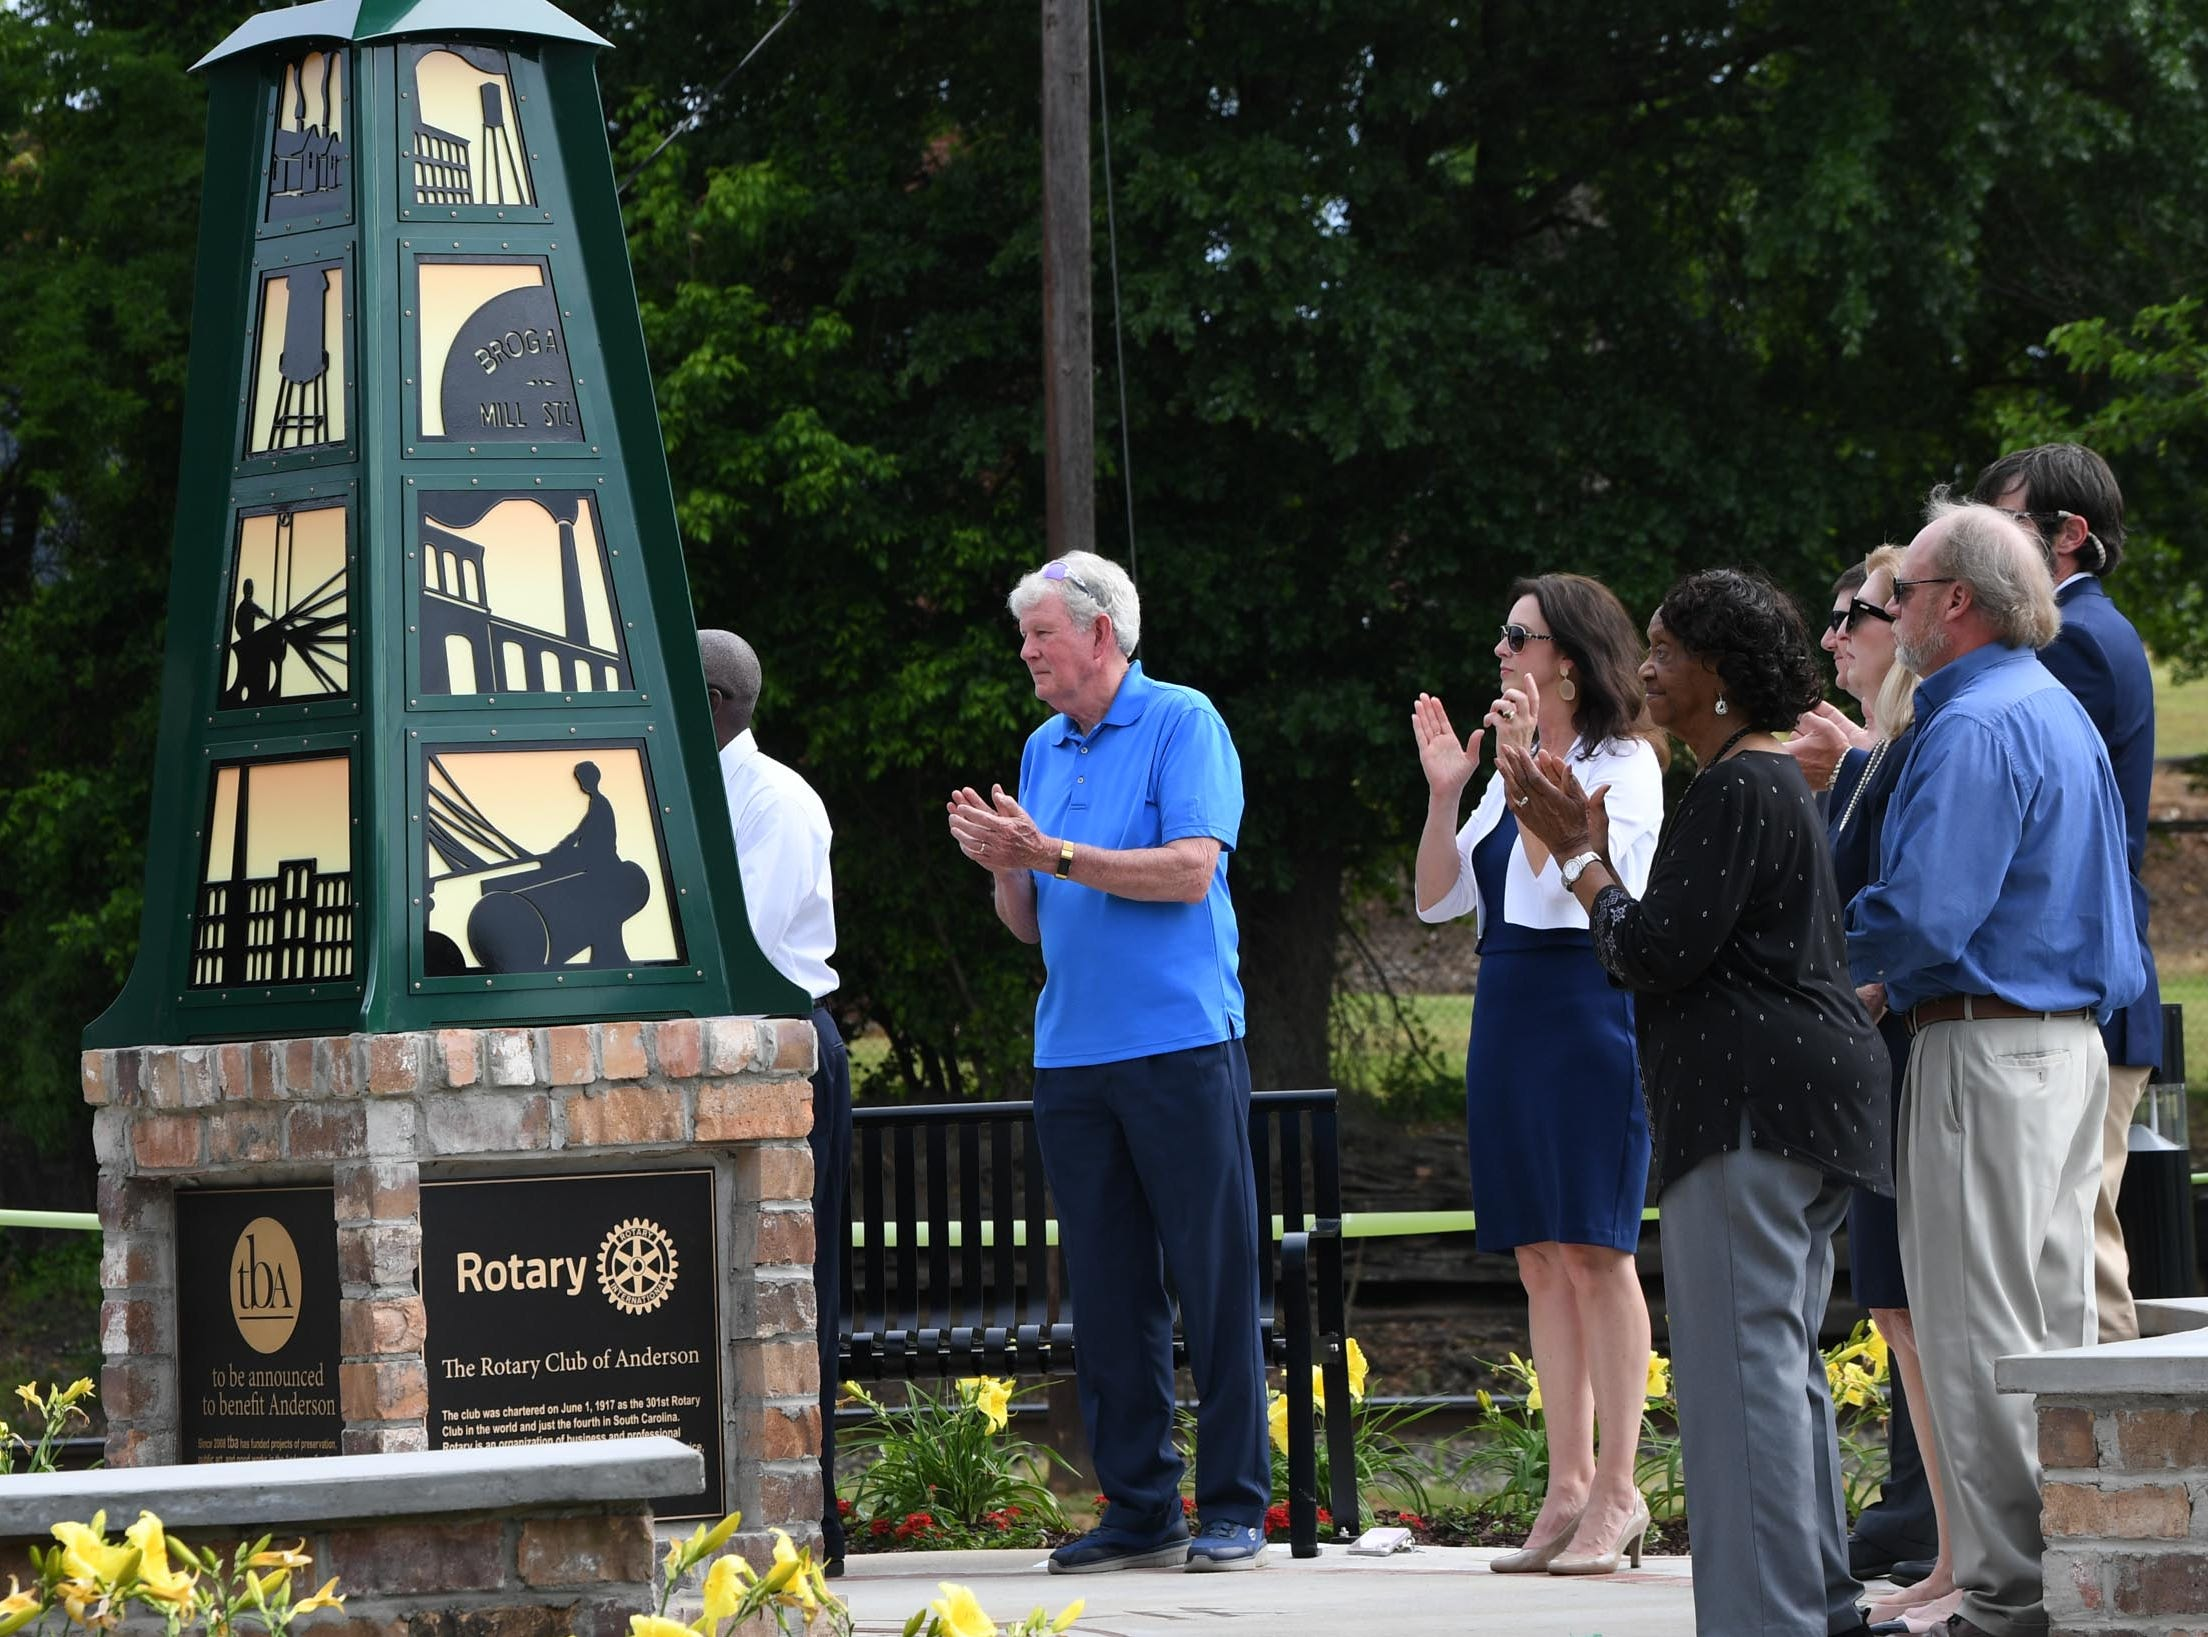 Anderson officials unveil the Under the bridge project called Textile Point in downtown Anderson Thursday, May 9, 2019. Scott Foster of Anderson designed the monument honoring years of textile mills in Anderson, with support partners from To Benefit Anderson, South Carolina Heritage Corridor, the Rotary Club of Anderson, and the City of Anderson.